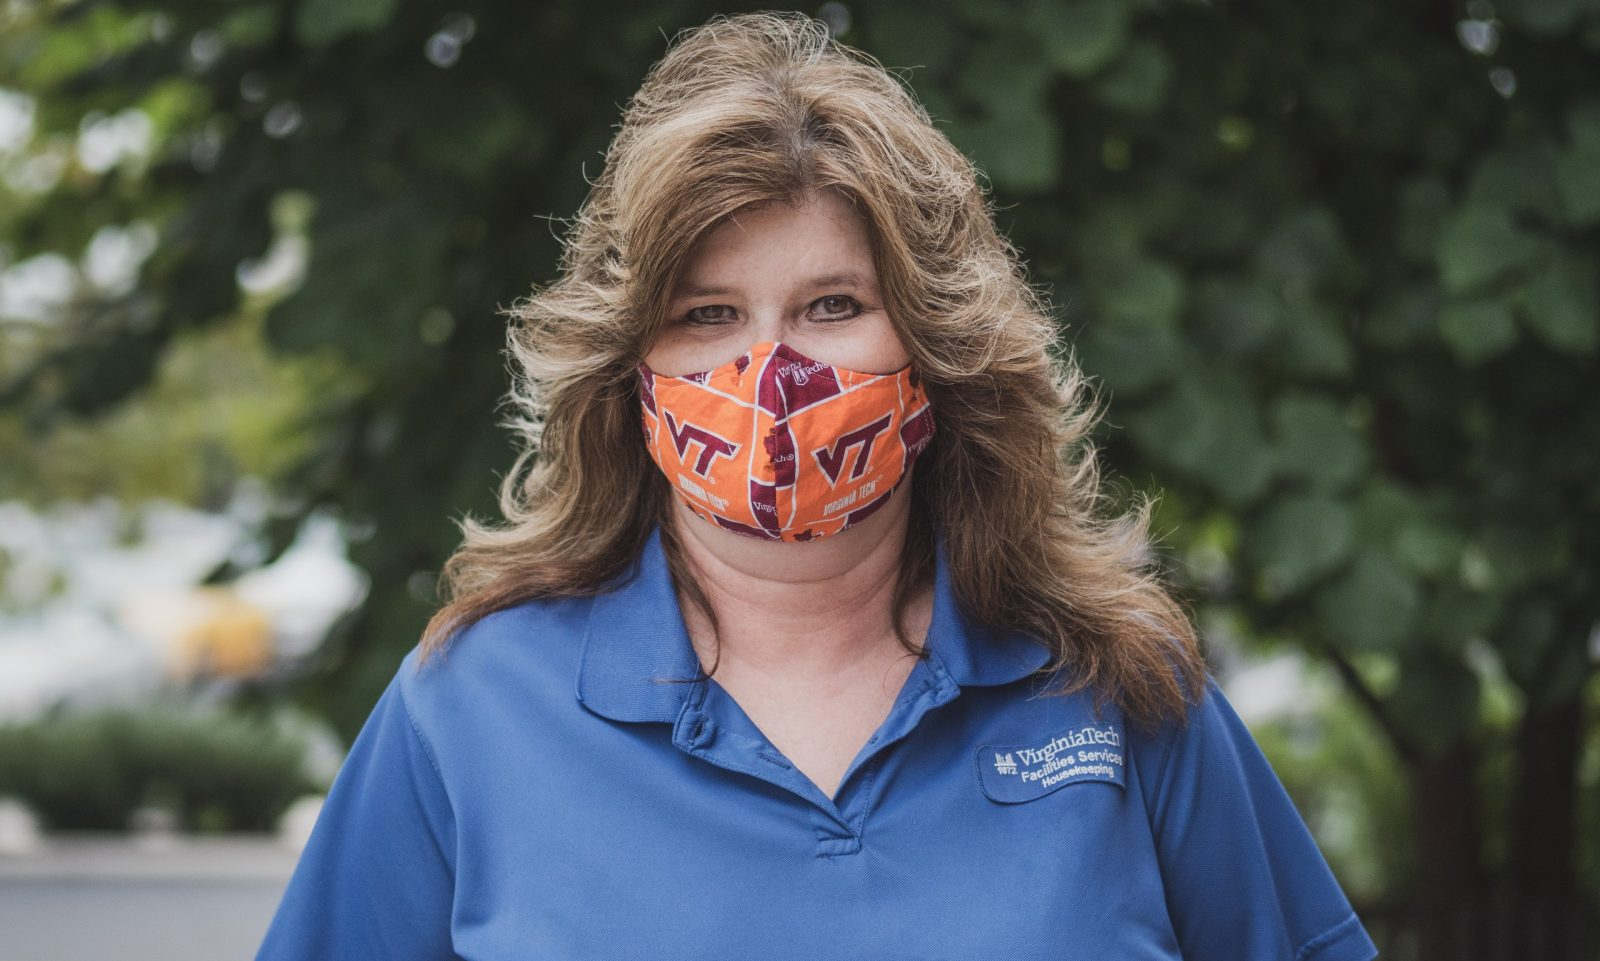 Susan Hypes, Housekeeper, standing outside wearing a VT orange and maroon mask and a blue housekeeping shirt.